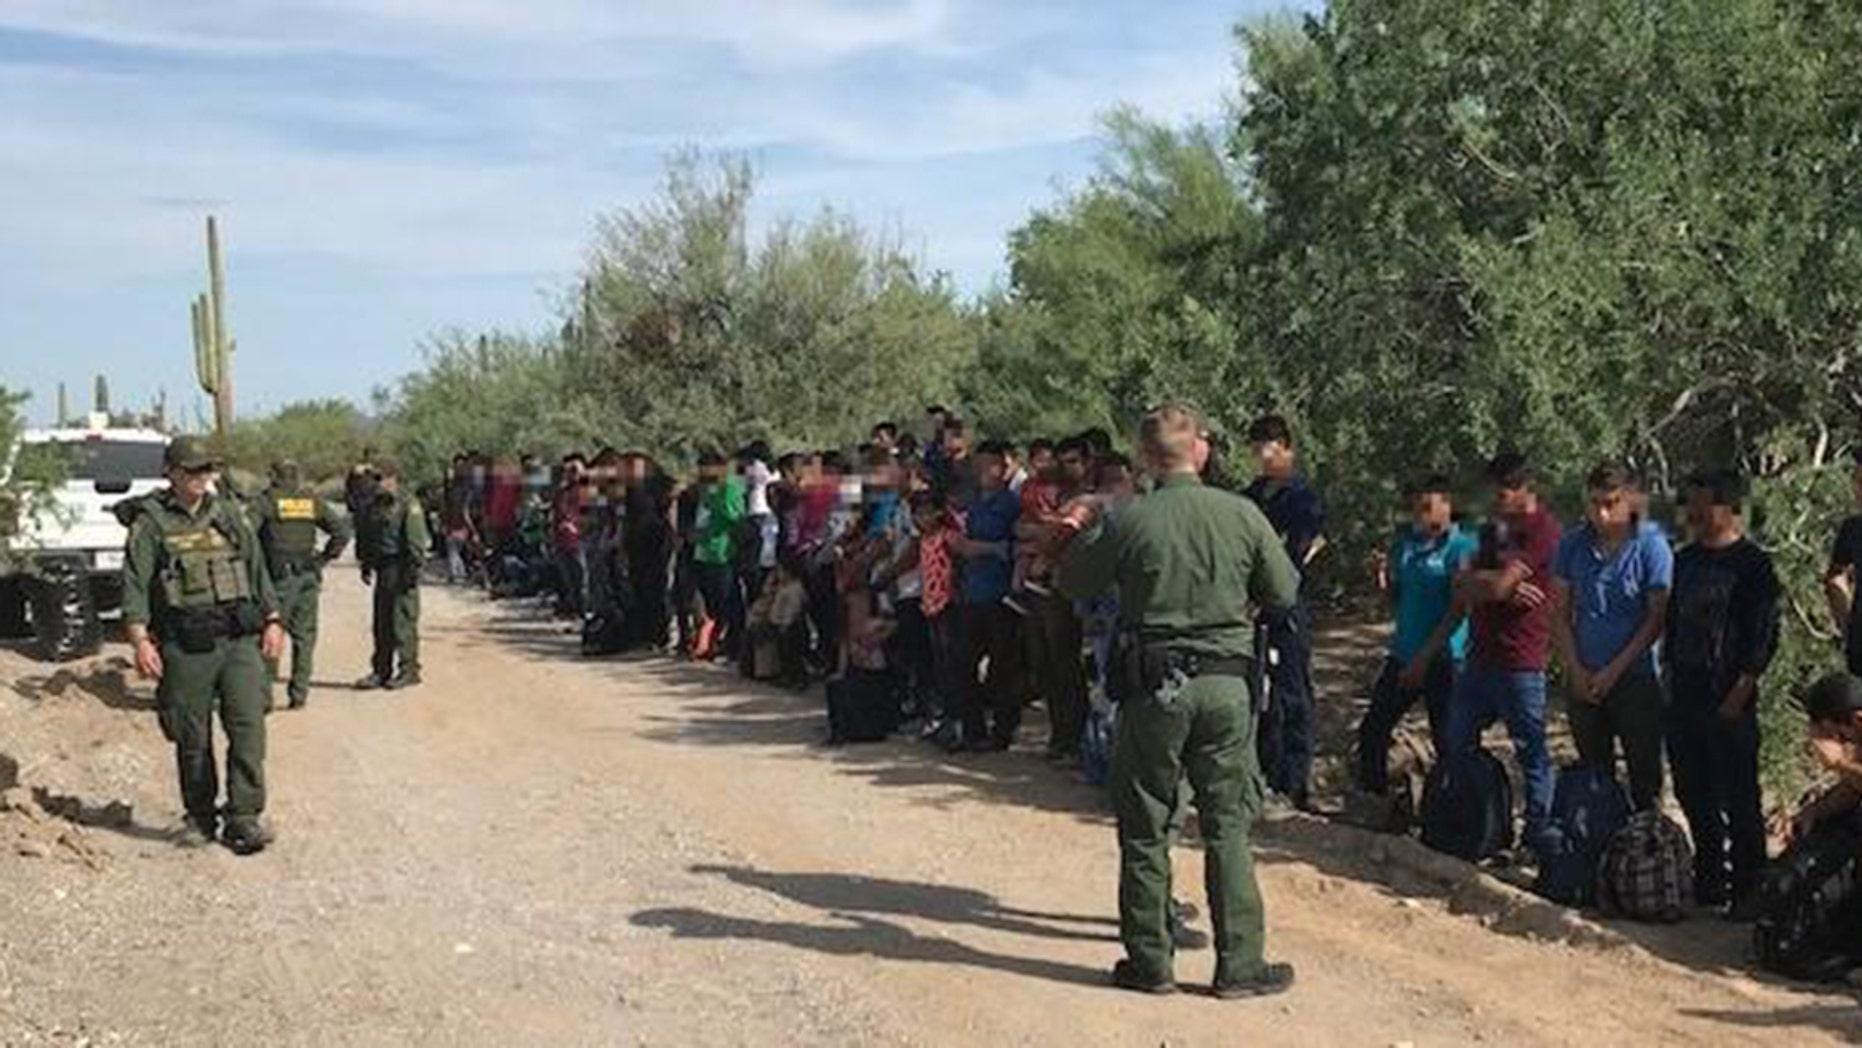 Border Patrol authorities say 128 immigrants believed abandoned by smugglers in a remote desert area at the Arizona border with Mexico are facing deportation.